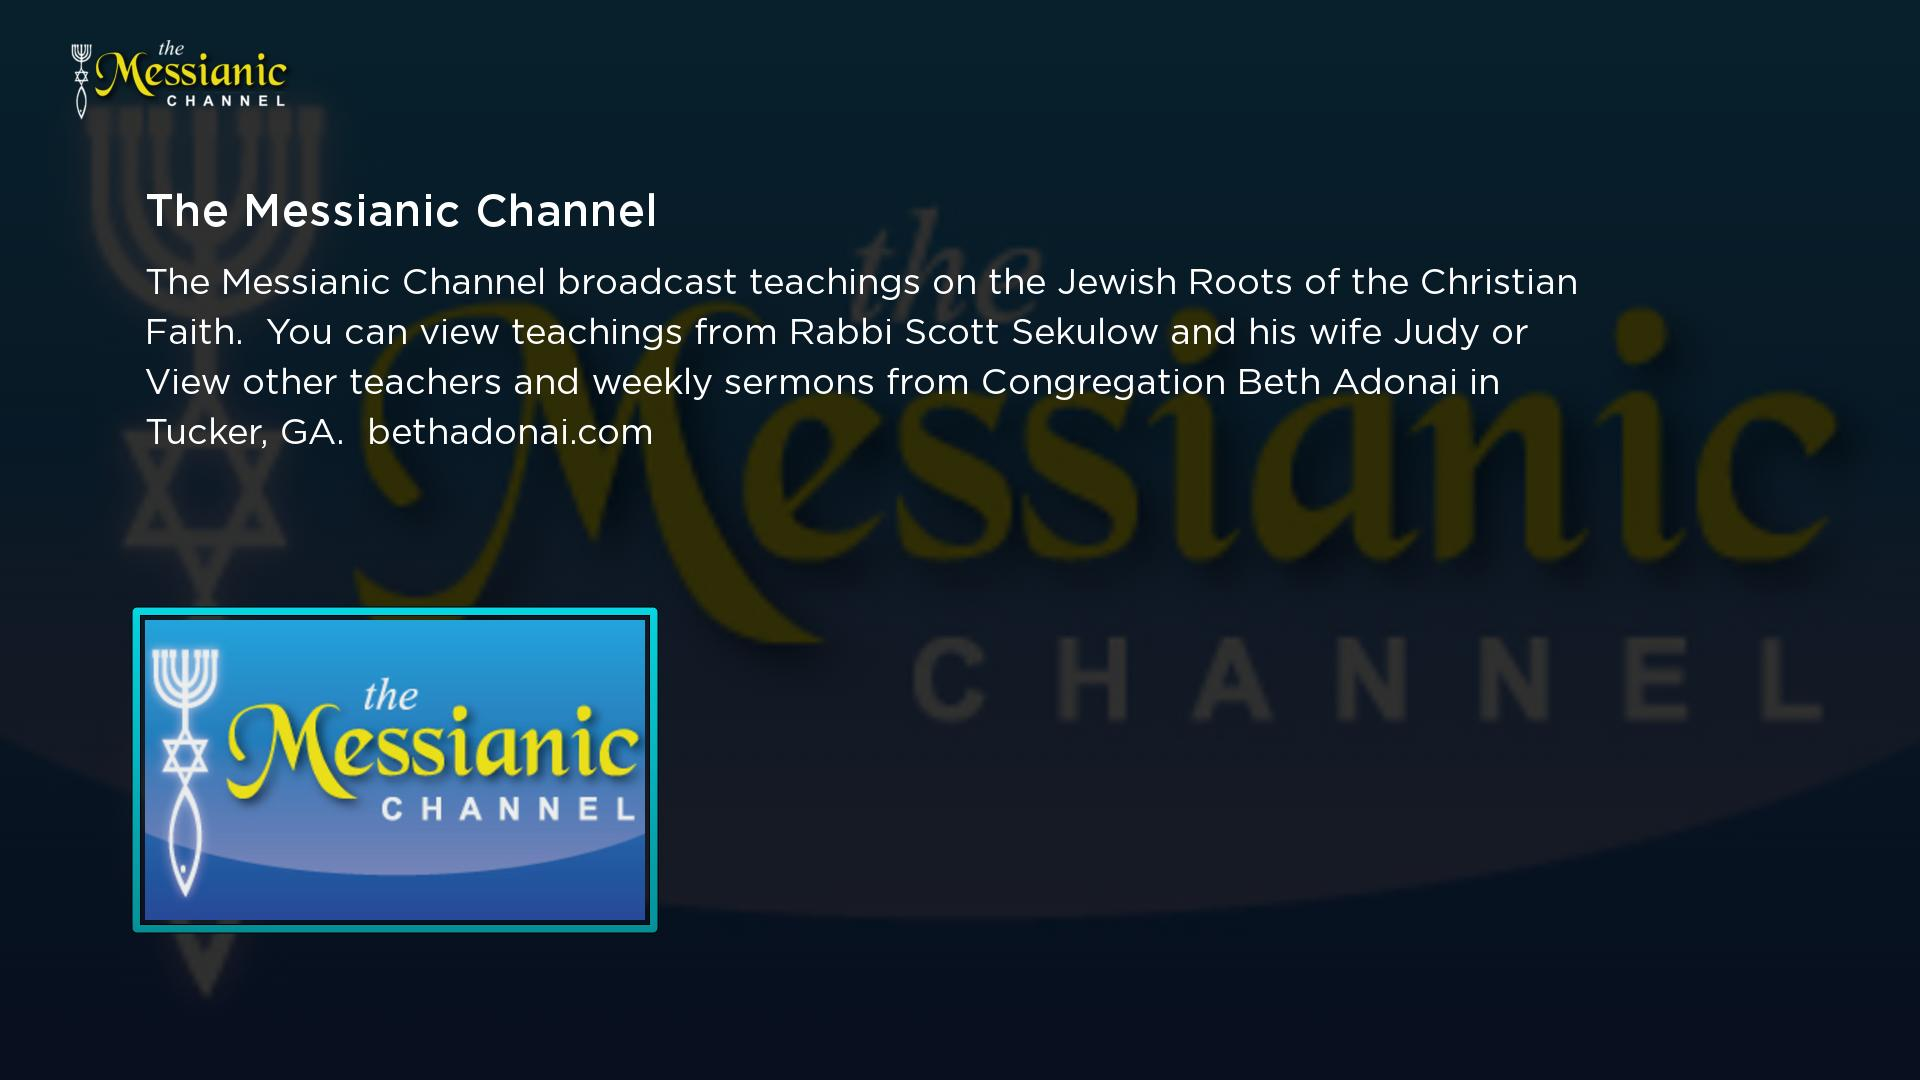 The Messianic Channel Screenshot 001